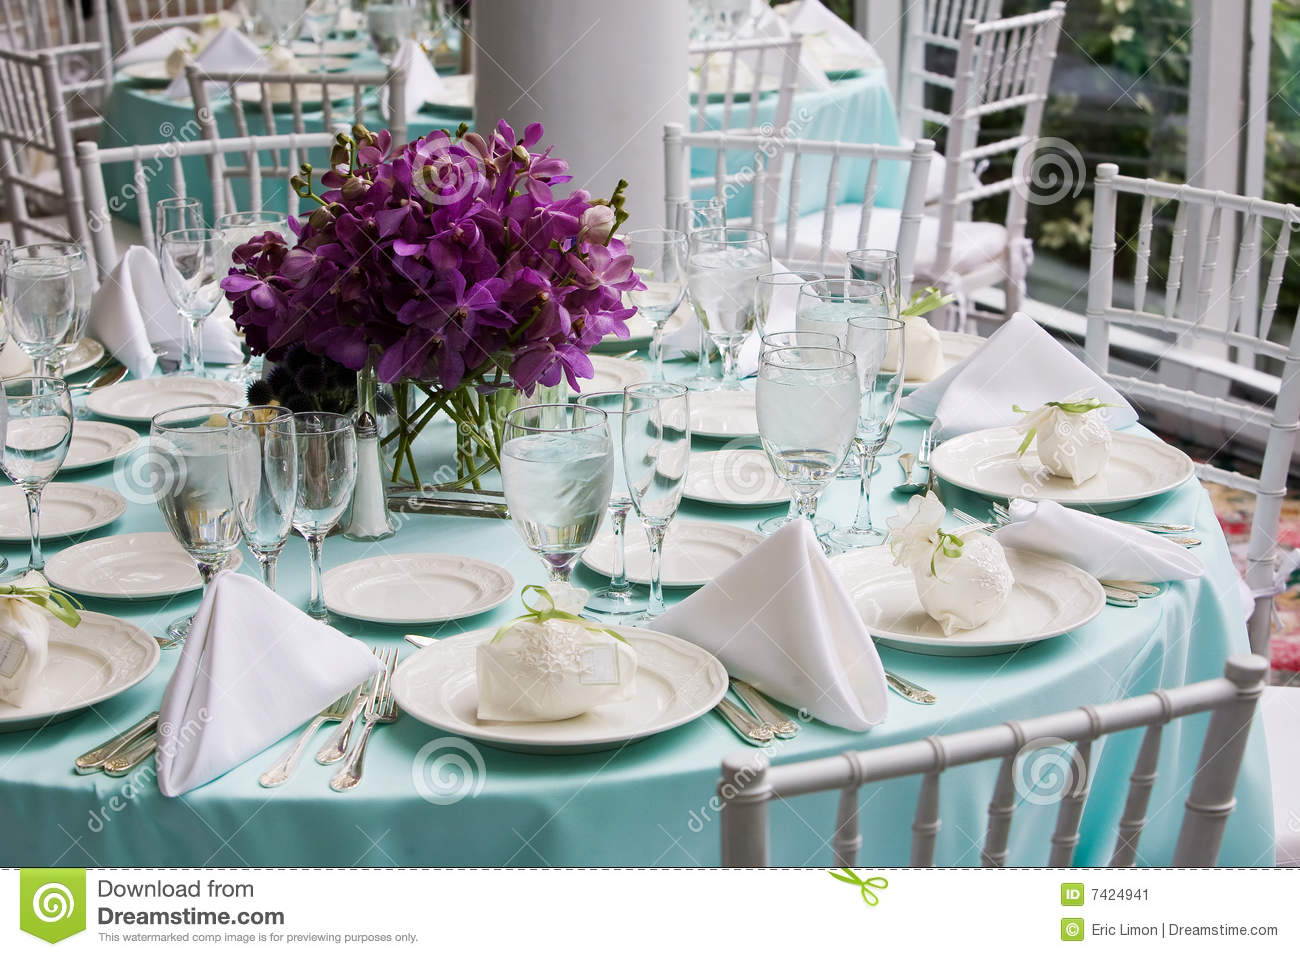 2 furthermore Romantic Table Decorations And Centerpiece Ideas For Valentines Day furthermore View event spaces in addition Stock Photo Beautiful Wedding Ceremony Design Decoration Elements Arch Floral Flowers Chairs Indoor Image60535520 additionally 57 Meeting Room Layout Hints Tips. on banquet chairs for less